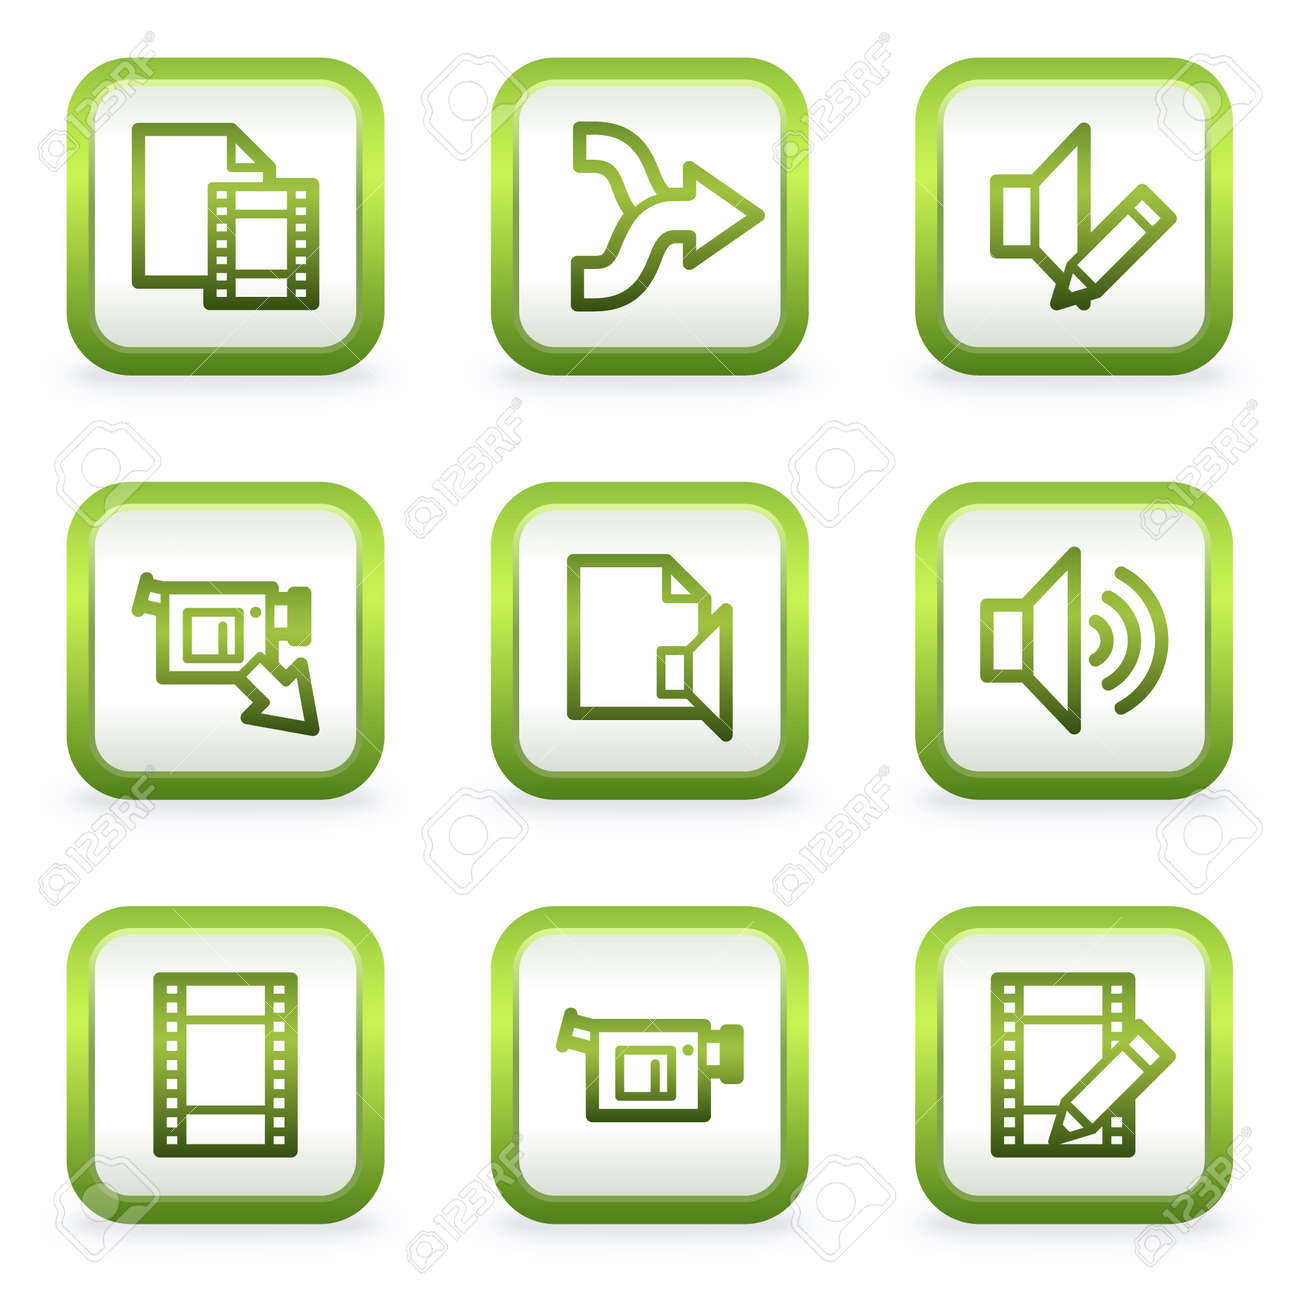 Audio video edit web icons square buttons green contour royalty audio video edit web icons square buttons green contour stock vector 6622405 ccuart Images